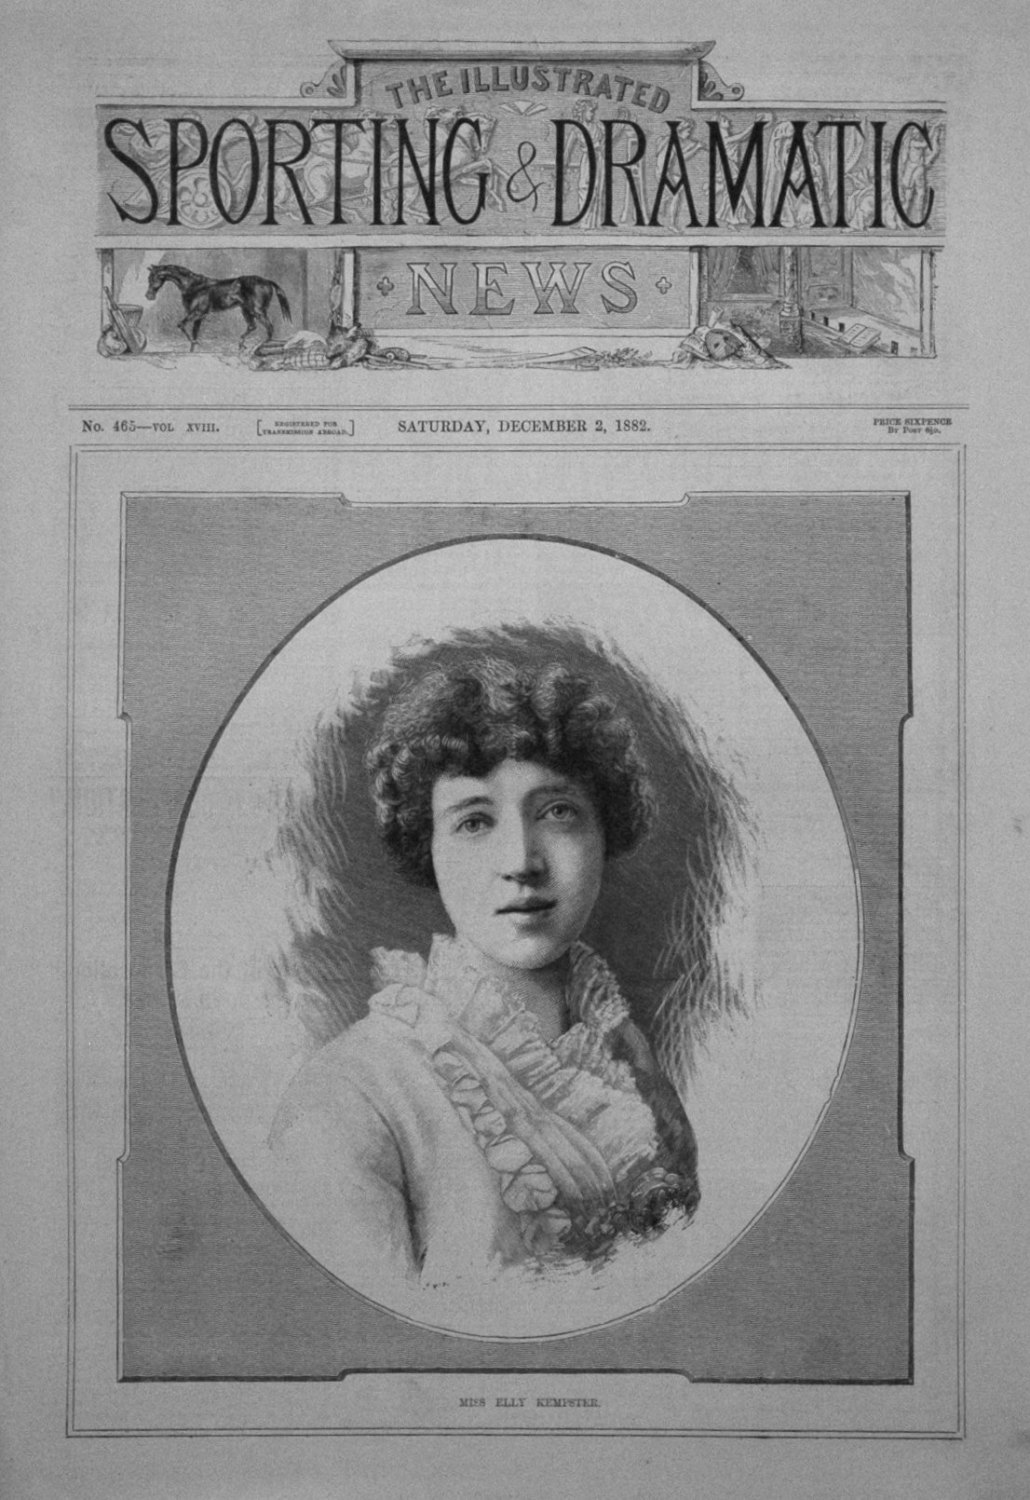 Miss Elly Kempster. 1882